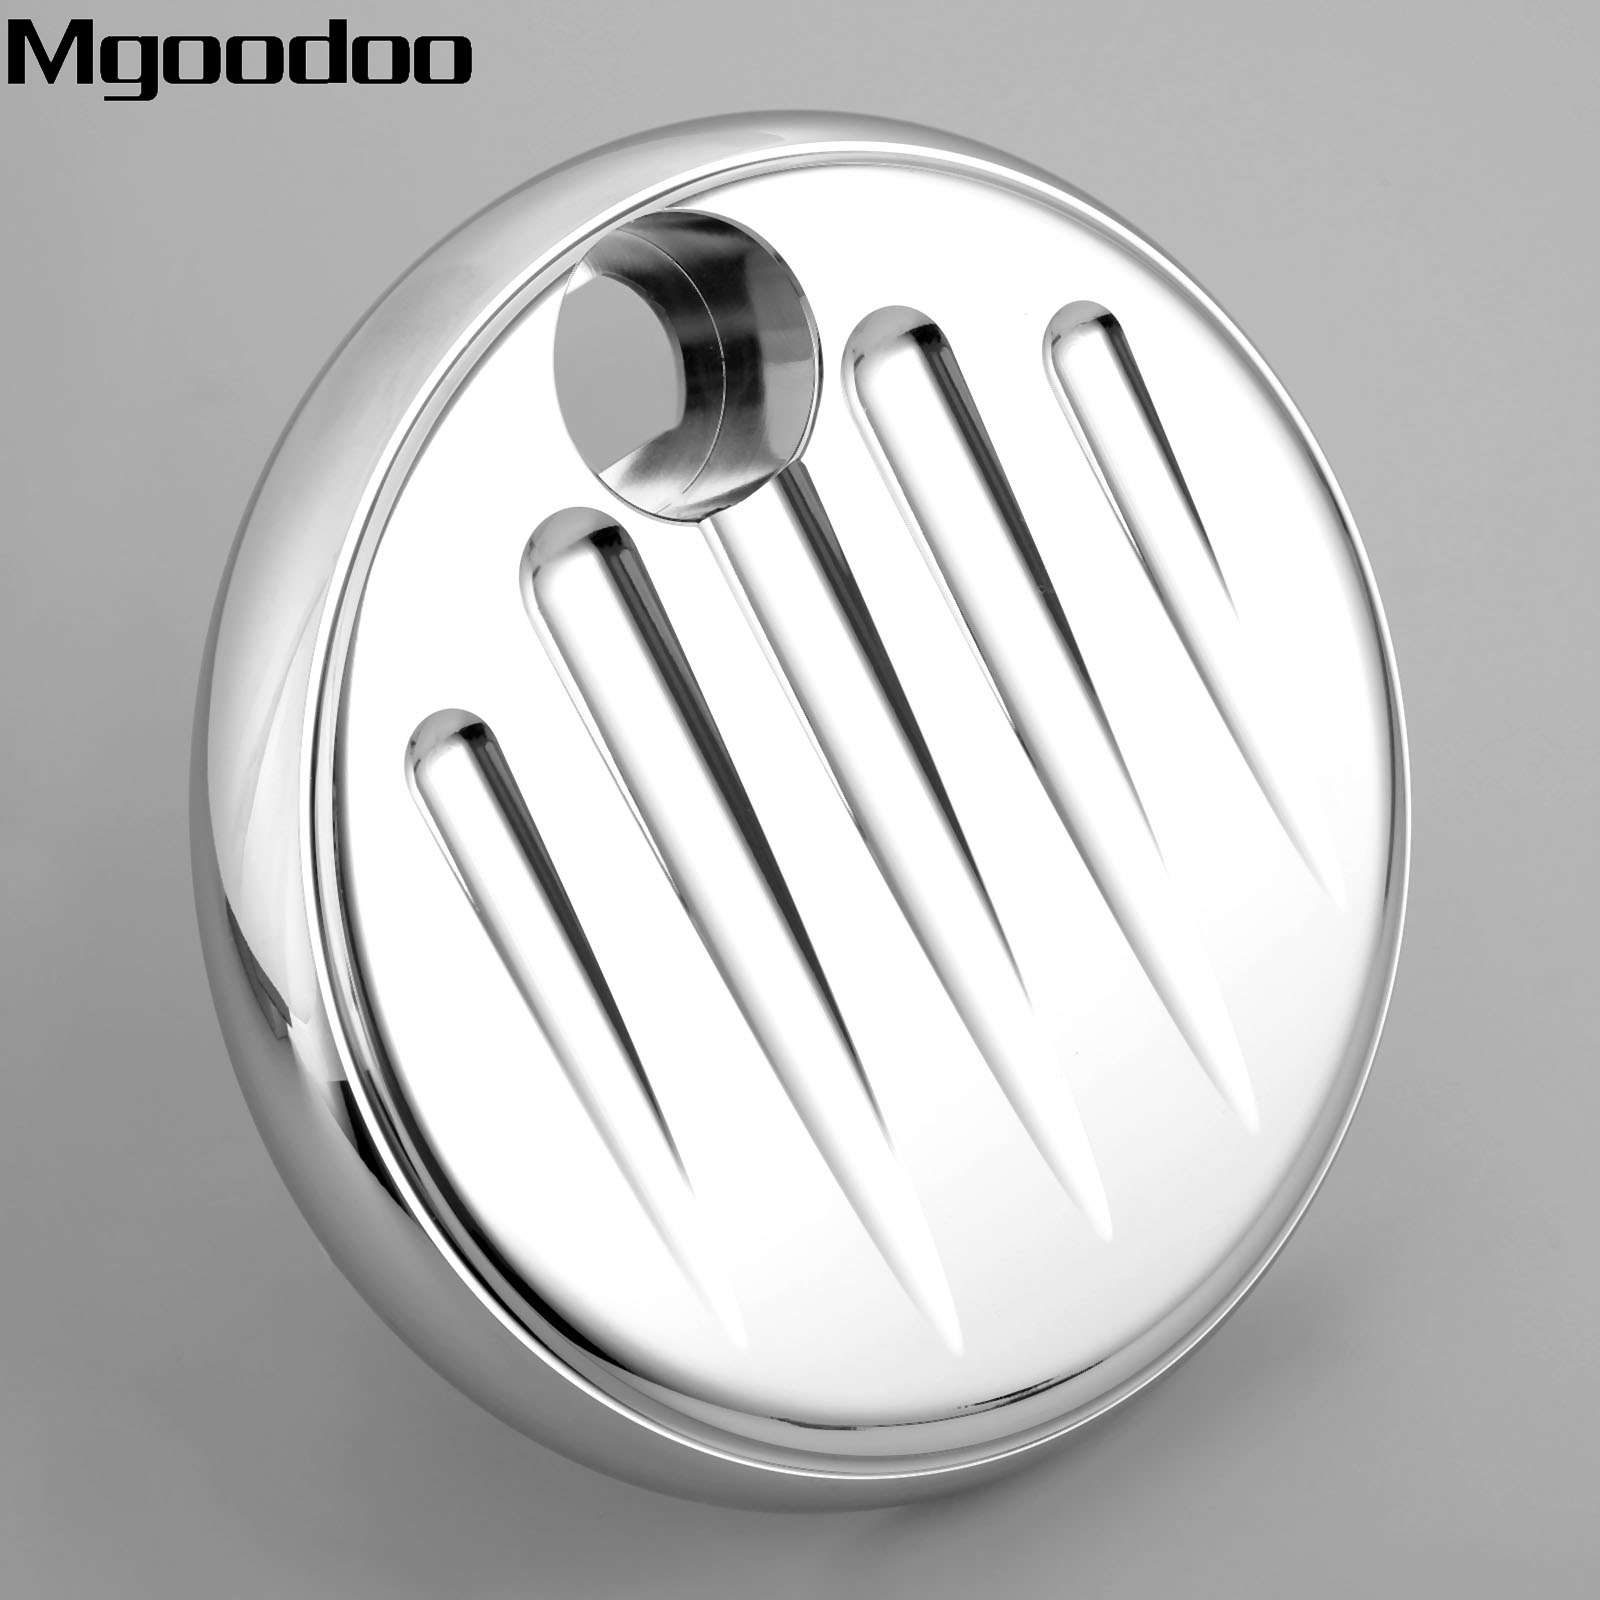 New Chrome Aluminum Motorcycle Deep Cut Contrast Gas Fuel Tank Console Door Cover For Harley Touring 2008-2016 FLHX FLTR FLHT brand new motorcycle cnc rc fuel tank gas cap fit for 1996 2014 harley sportster dyna touring softtail